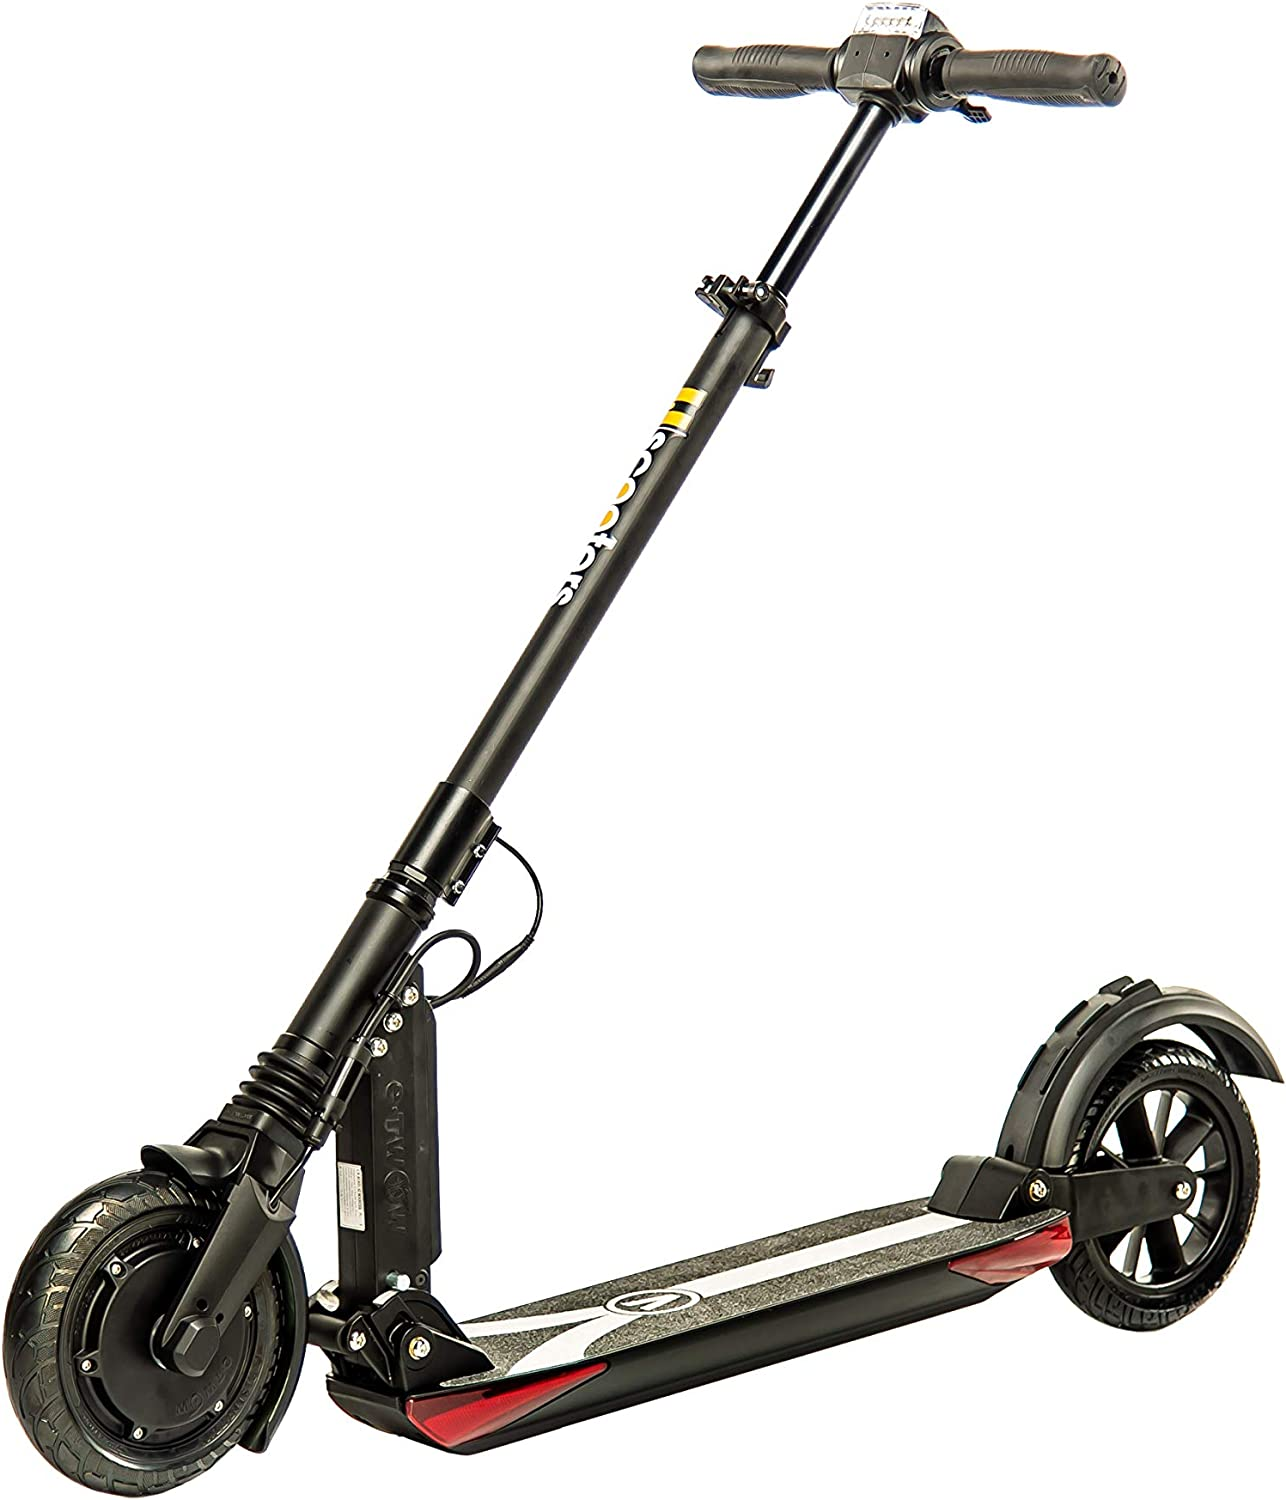 Most Powerful Adults Electric Scooters In '2021' 4